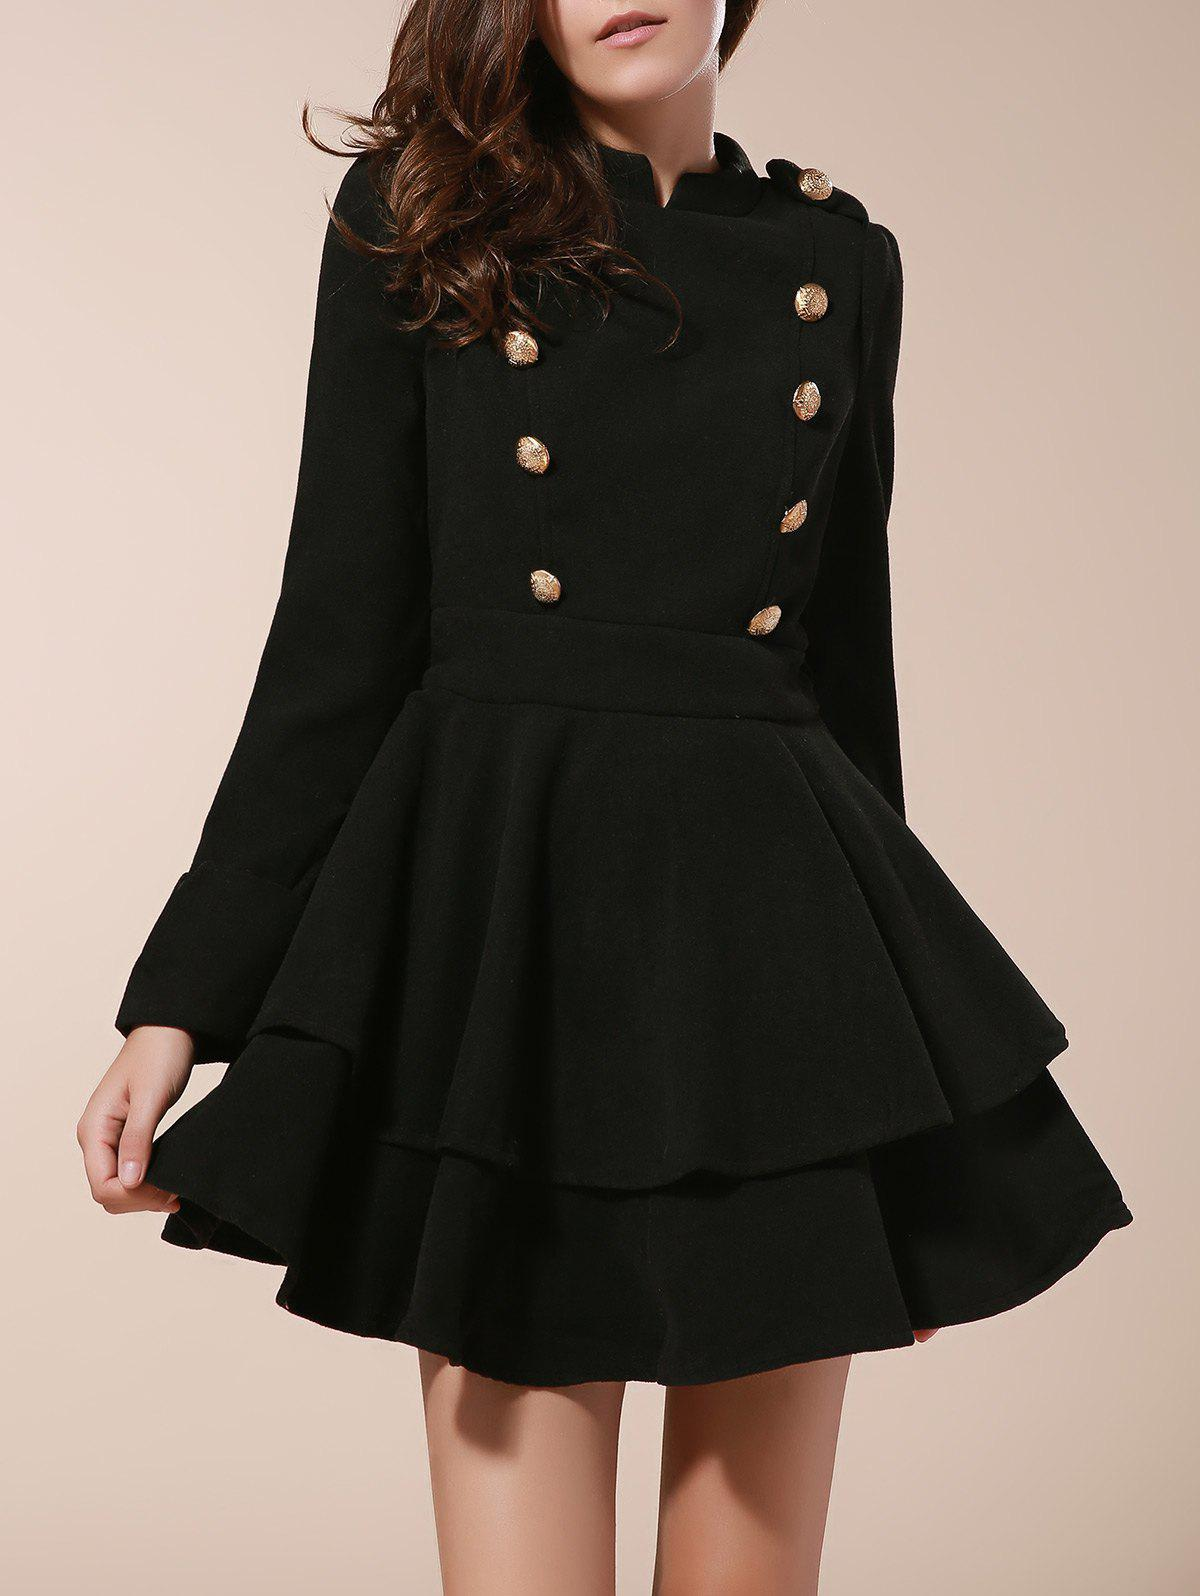 Vintage Stand Collar Long Sleeve Buttons Embellished Ruffles Dress For Women